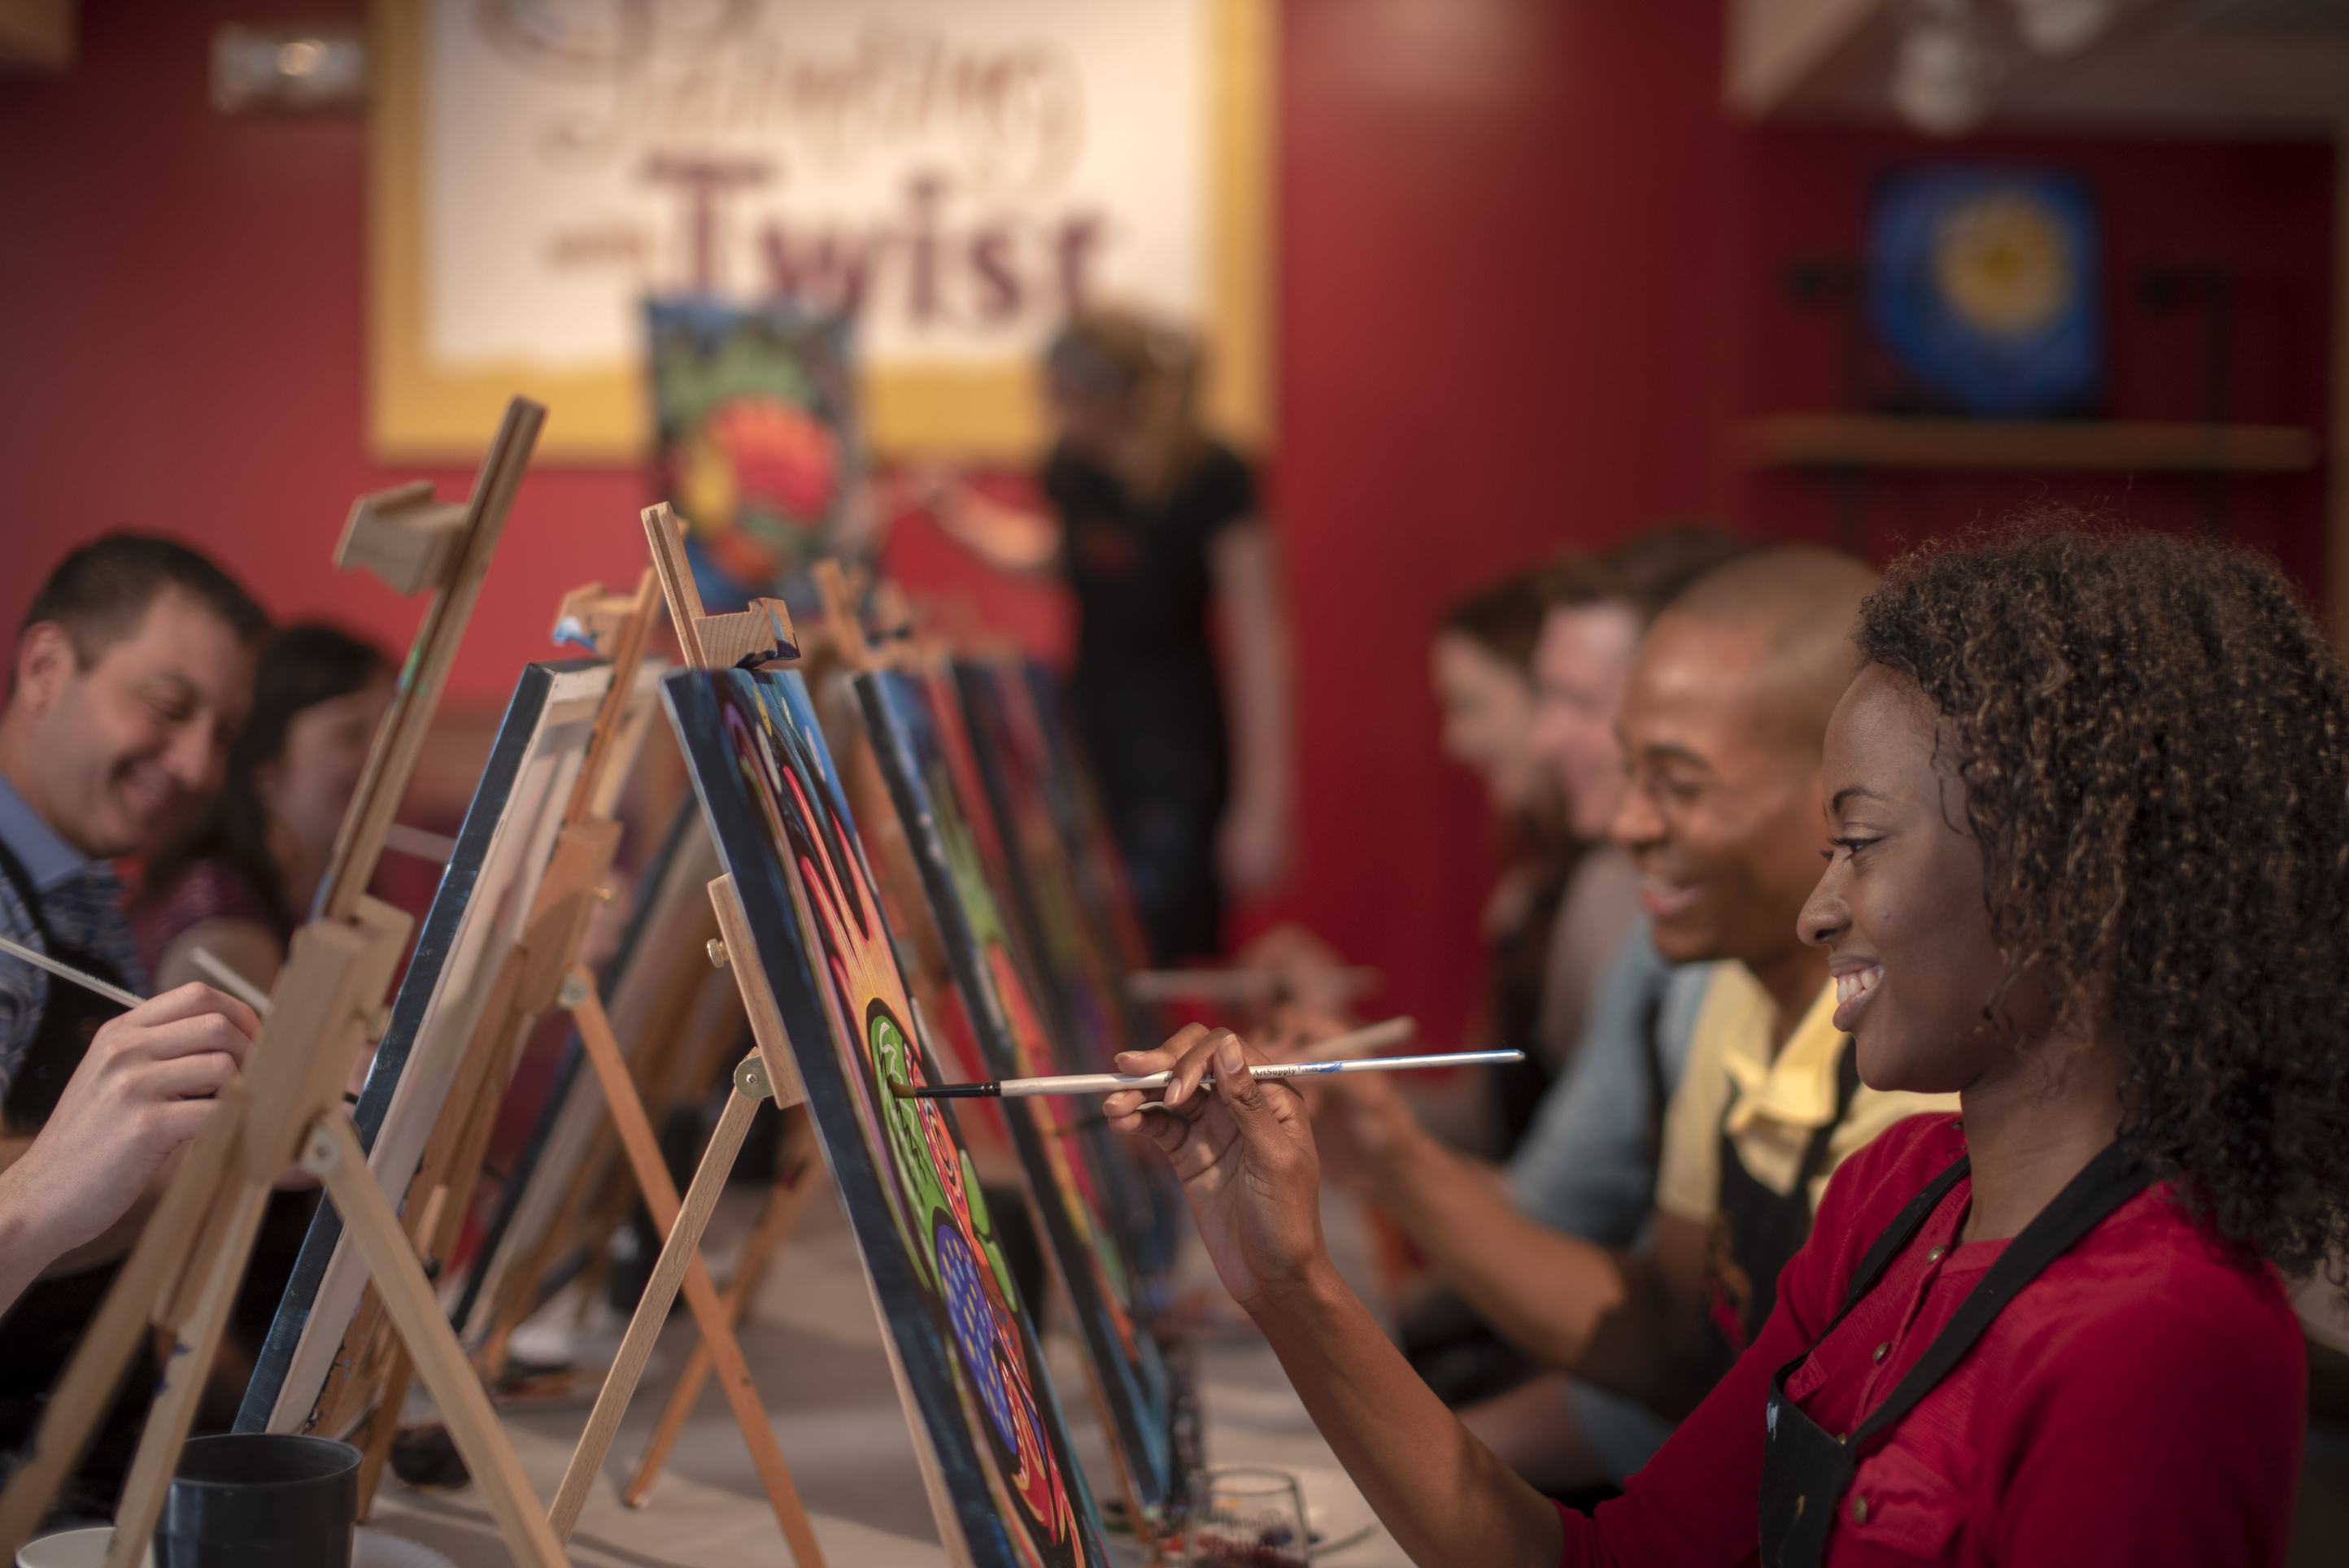 In recent years, the interactive painting industry has become a global sensation. Around the world, adults can spend their nights out learning to paint in a relaxed, BYOB setting. Thousands of franchises exist to help us all unleash our inner creative.